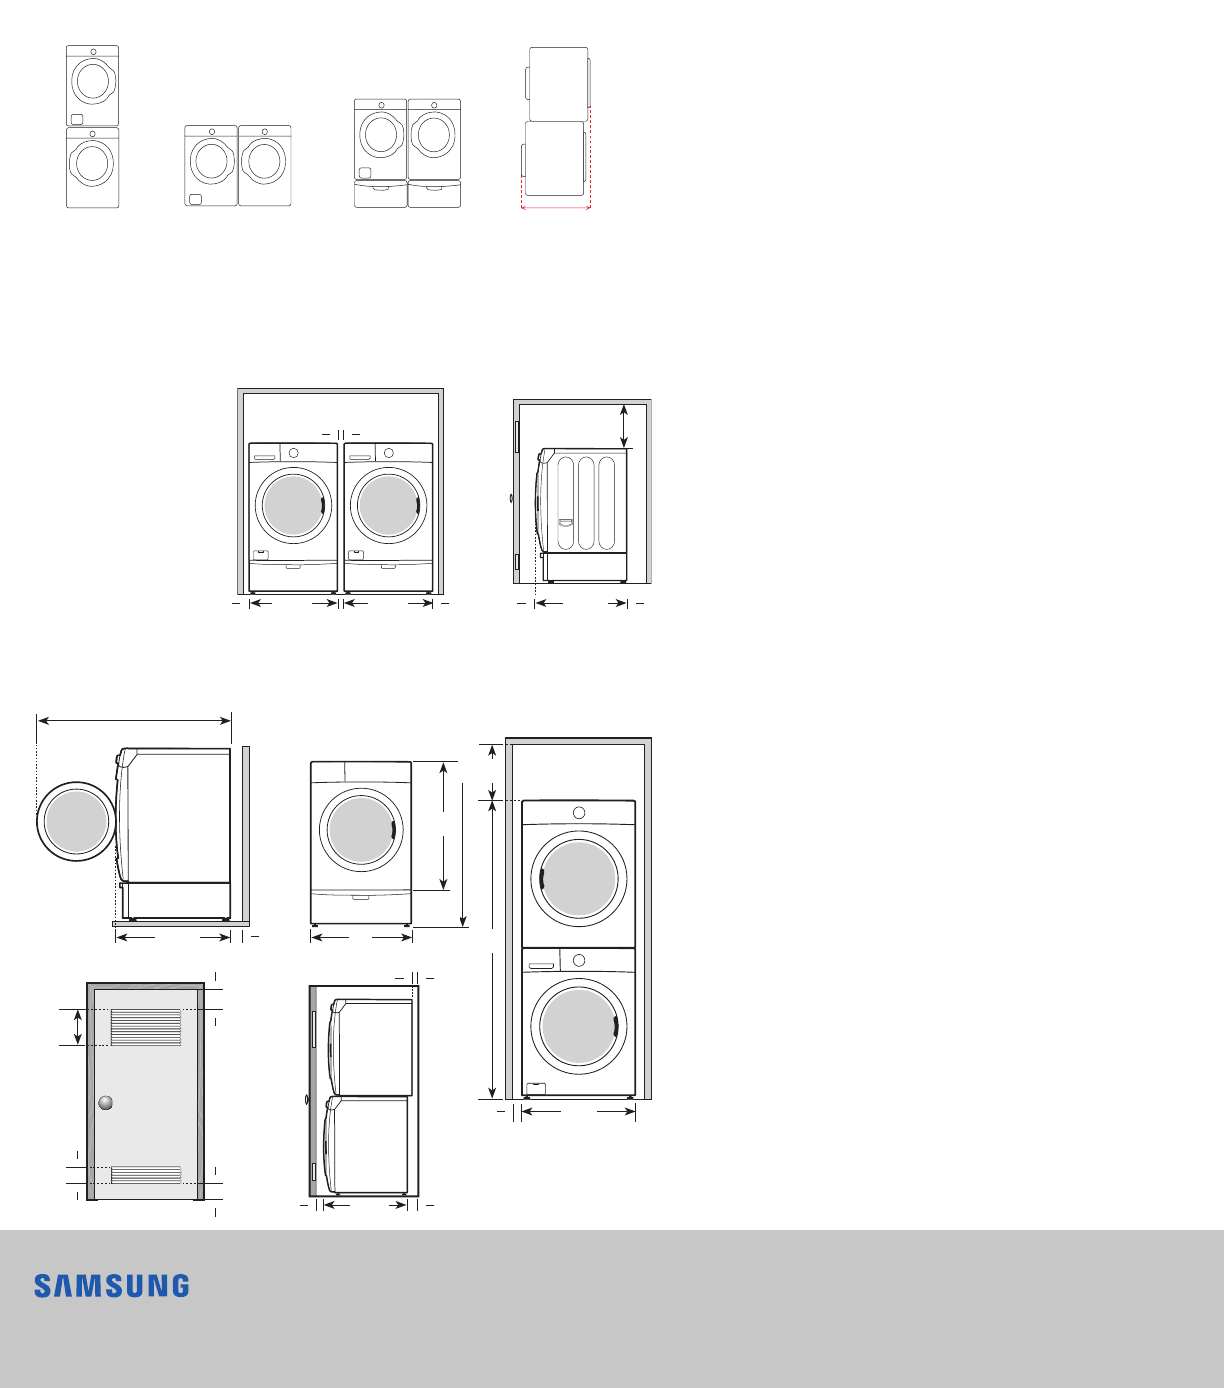 Samsung Dv42H5200Ep A3 Specification Sheet